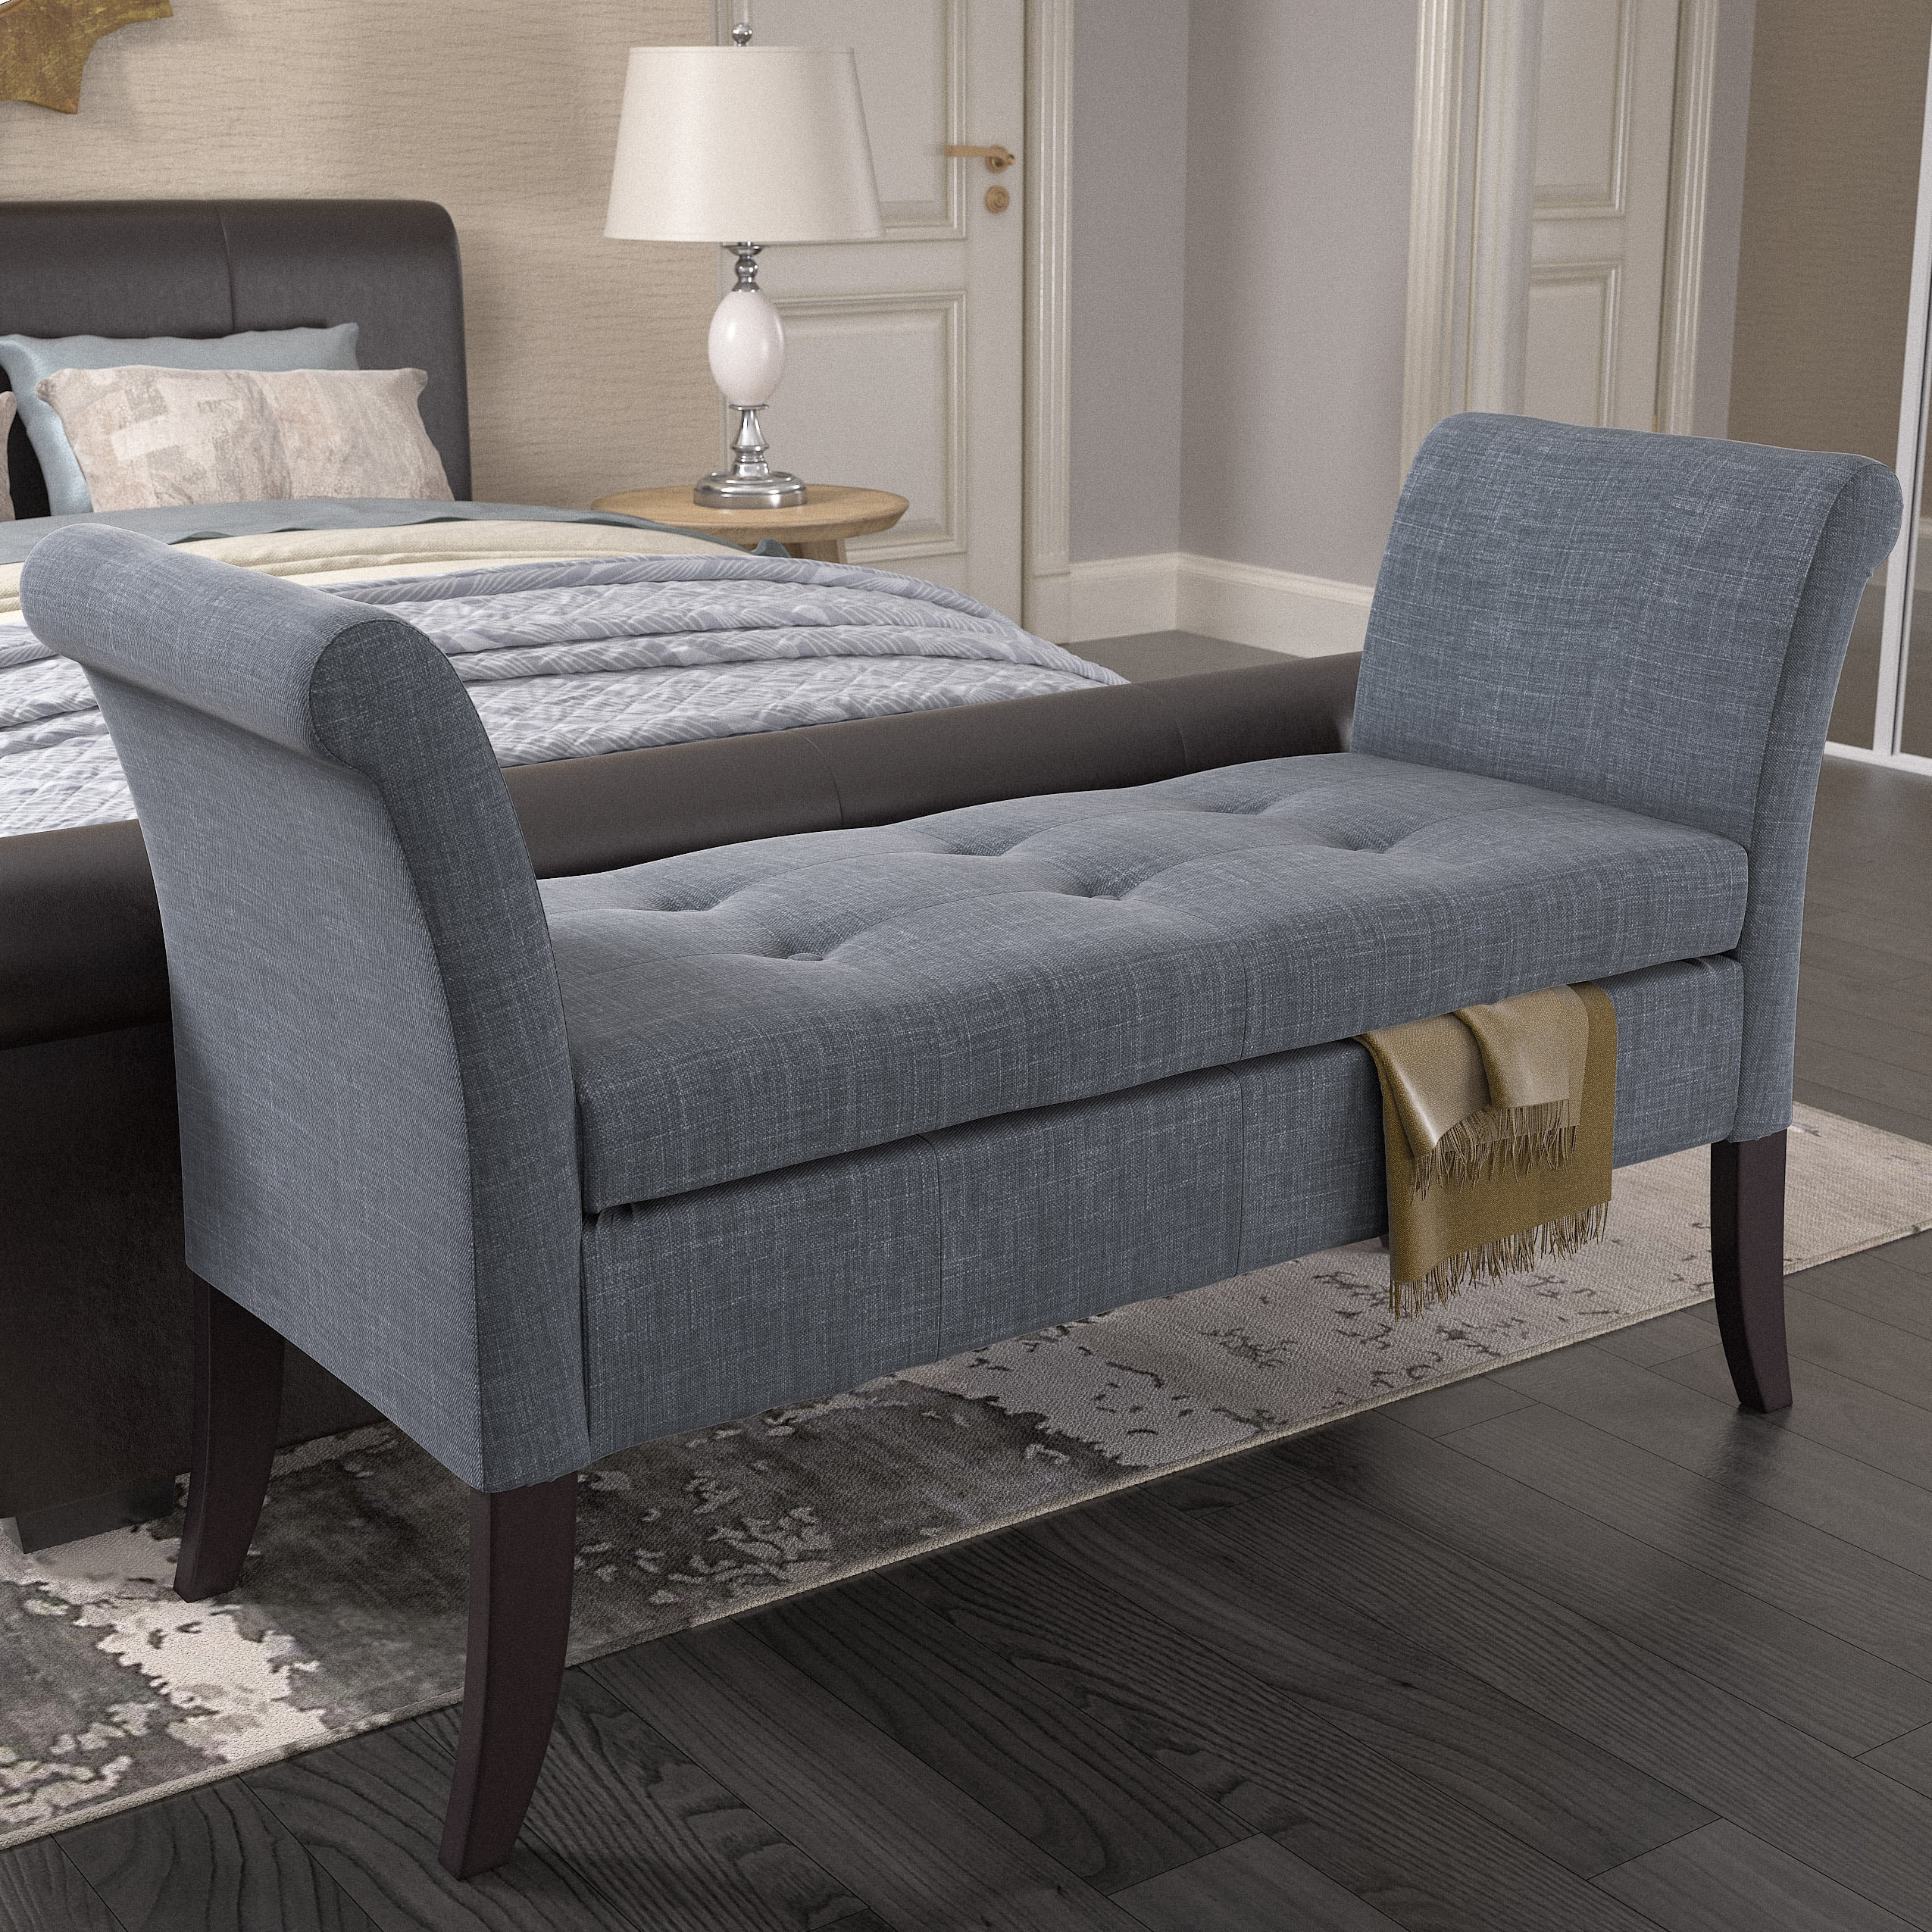 Storage With Idea Bedroom Bench With Arms